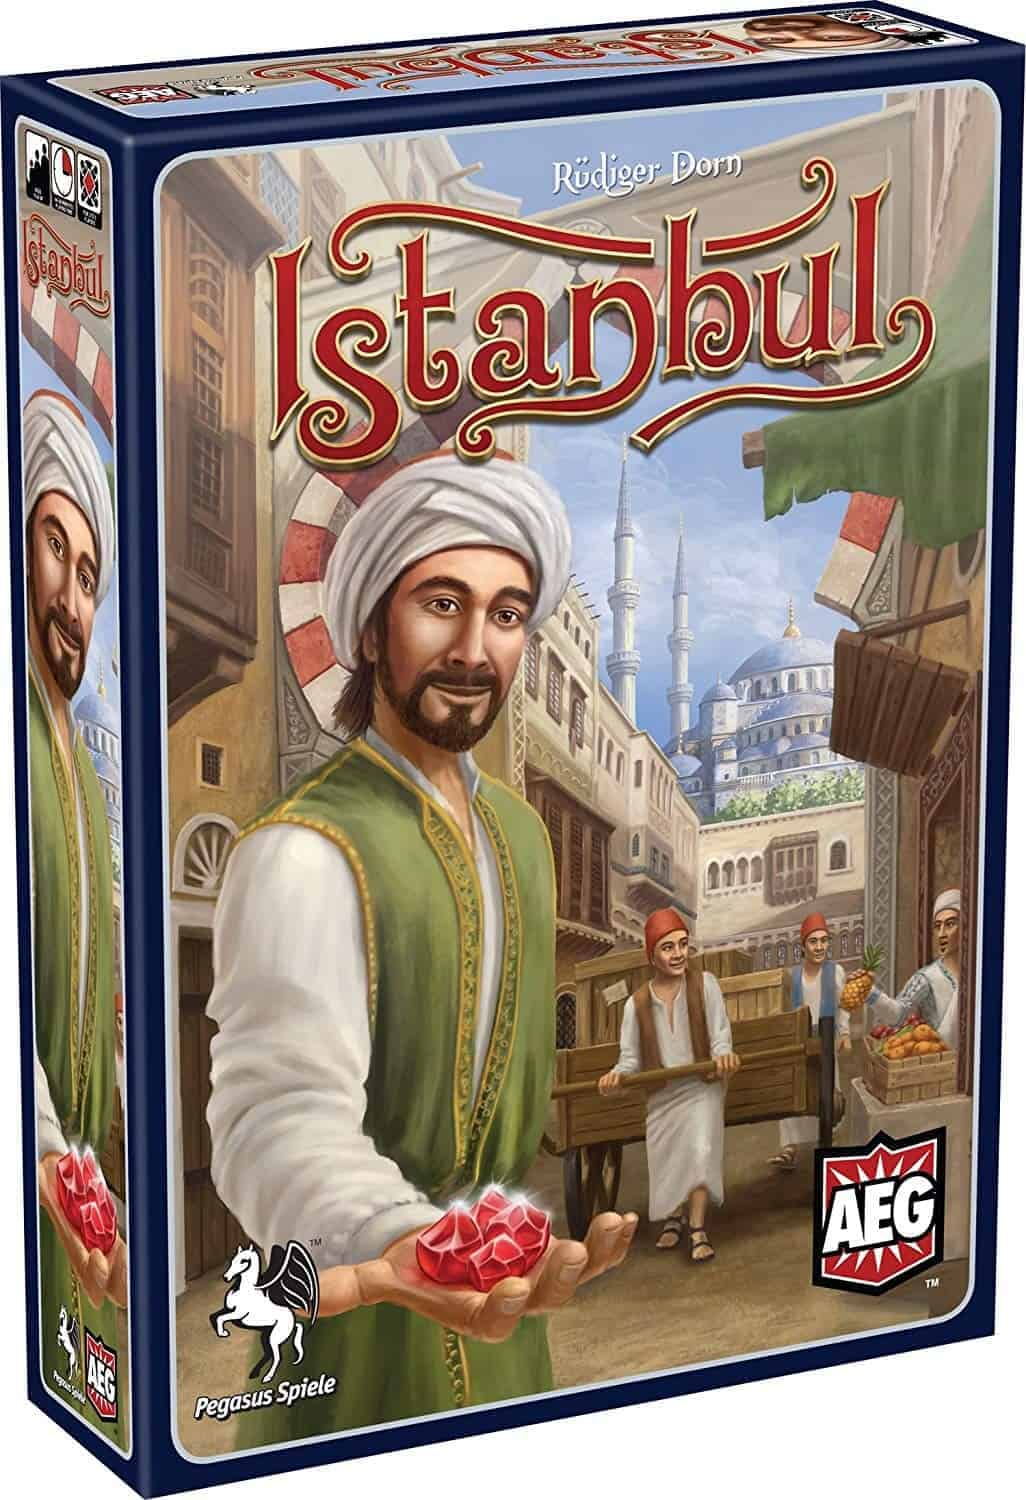 Picking the best family board games is laborious as it is the most popular type of board games. Istanbul was the quickest pick though!